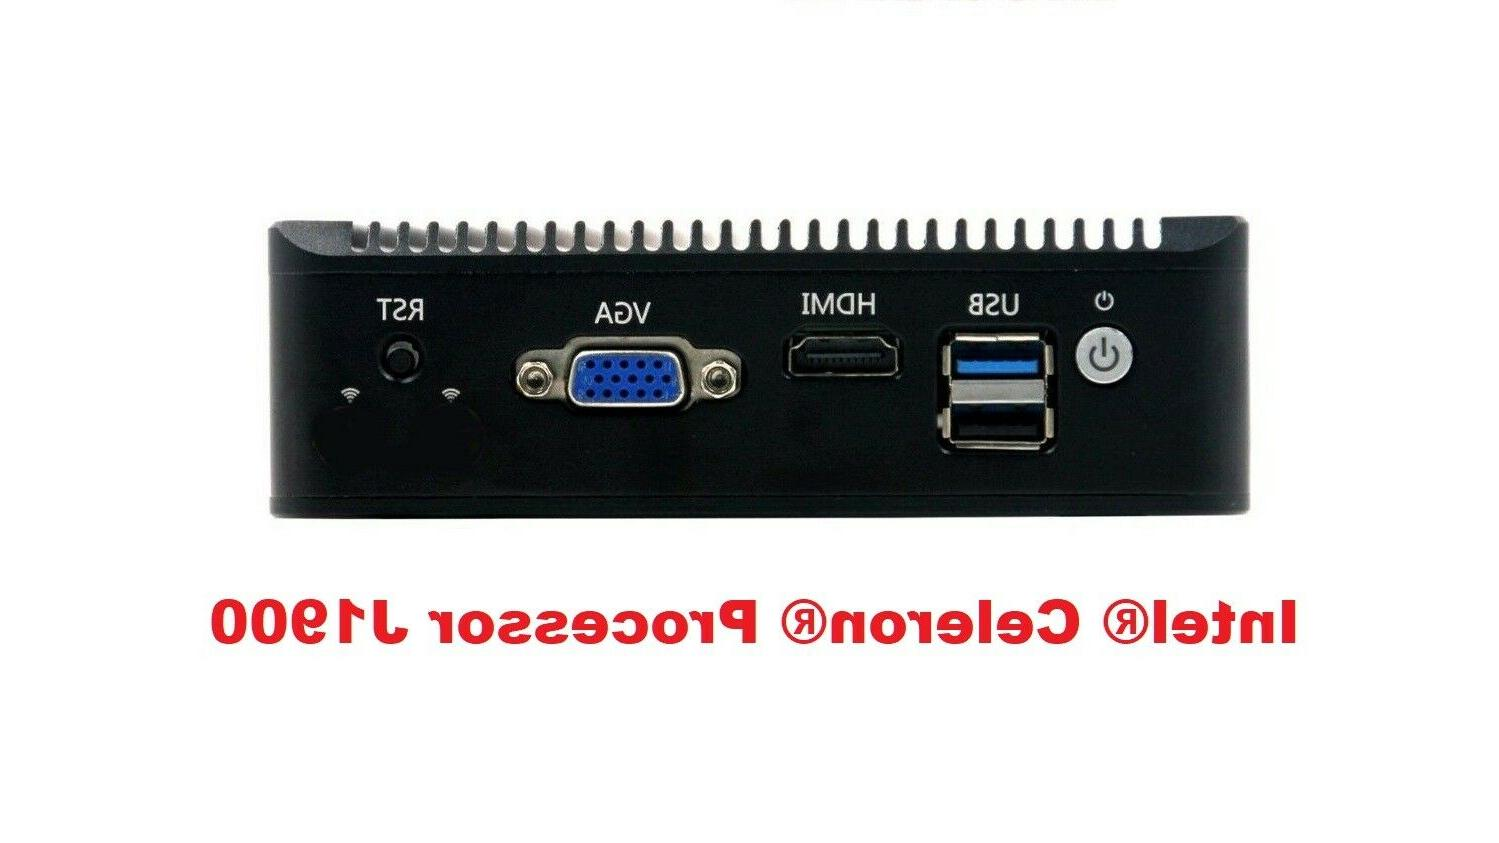 Fanless J1900 4 Port 0G pfSense Firewall